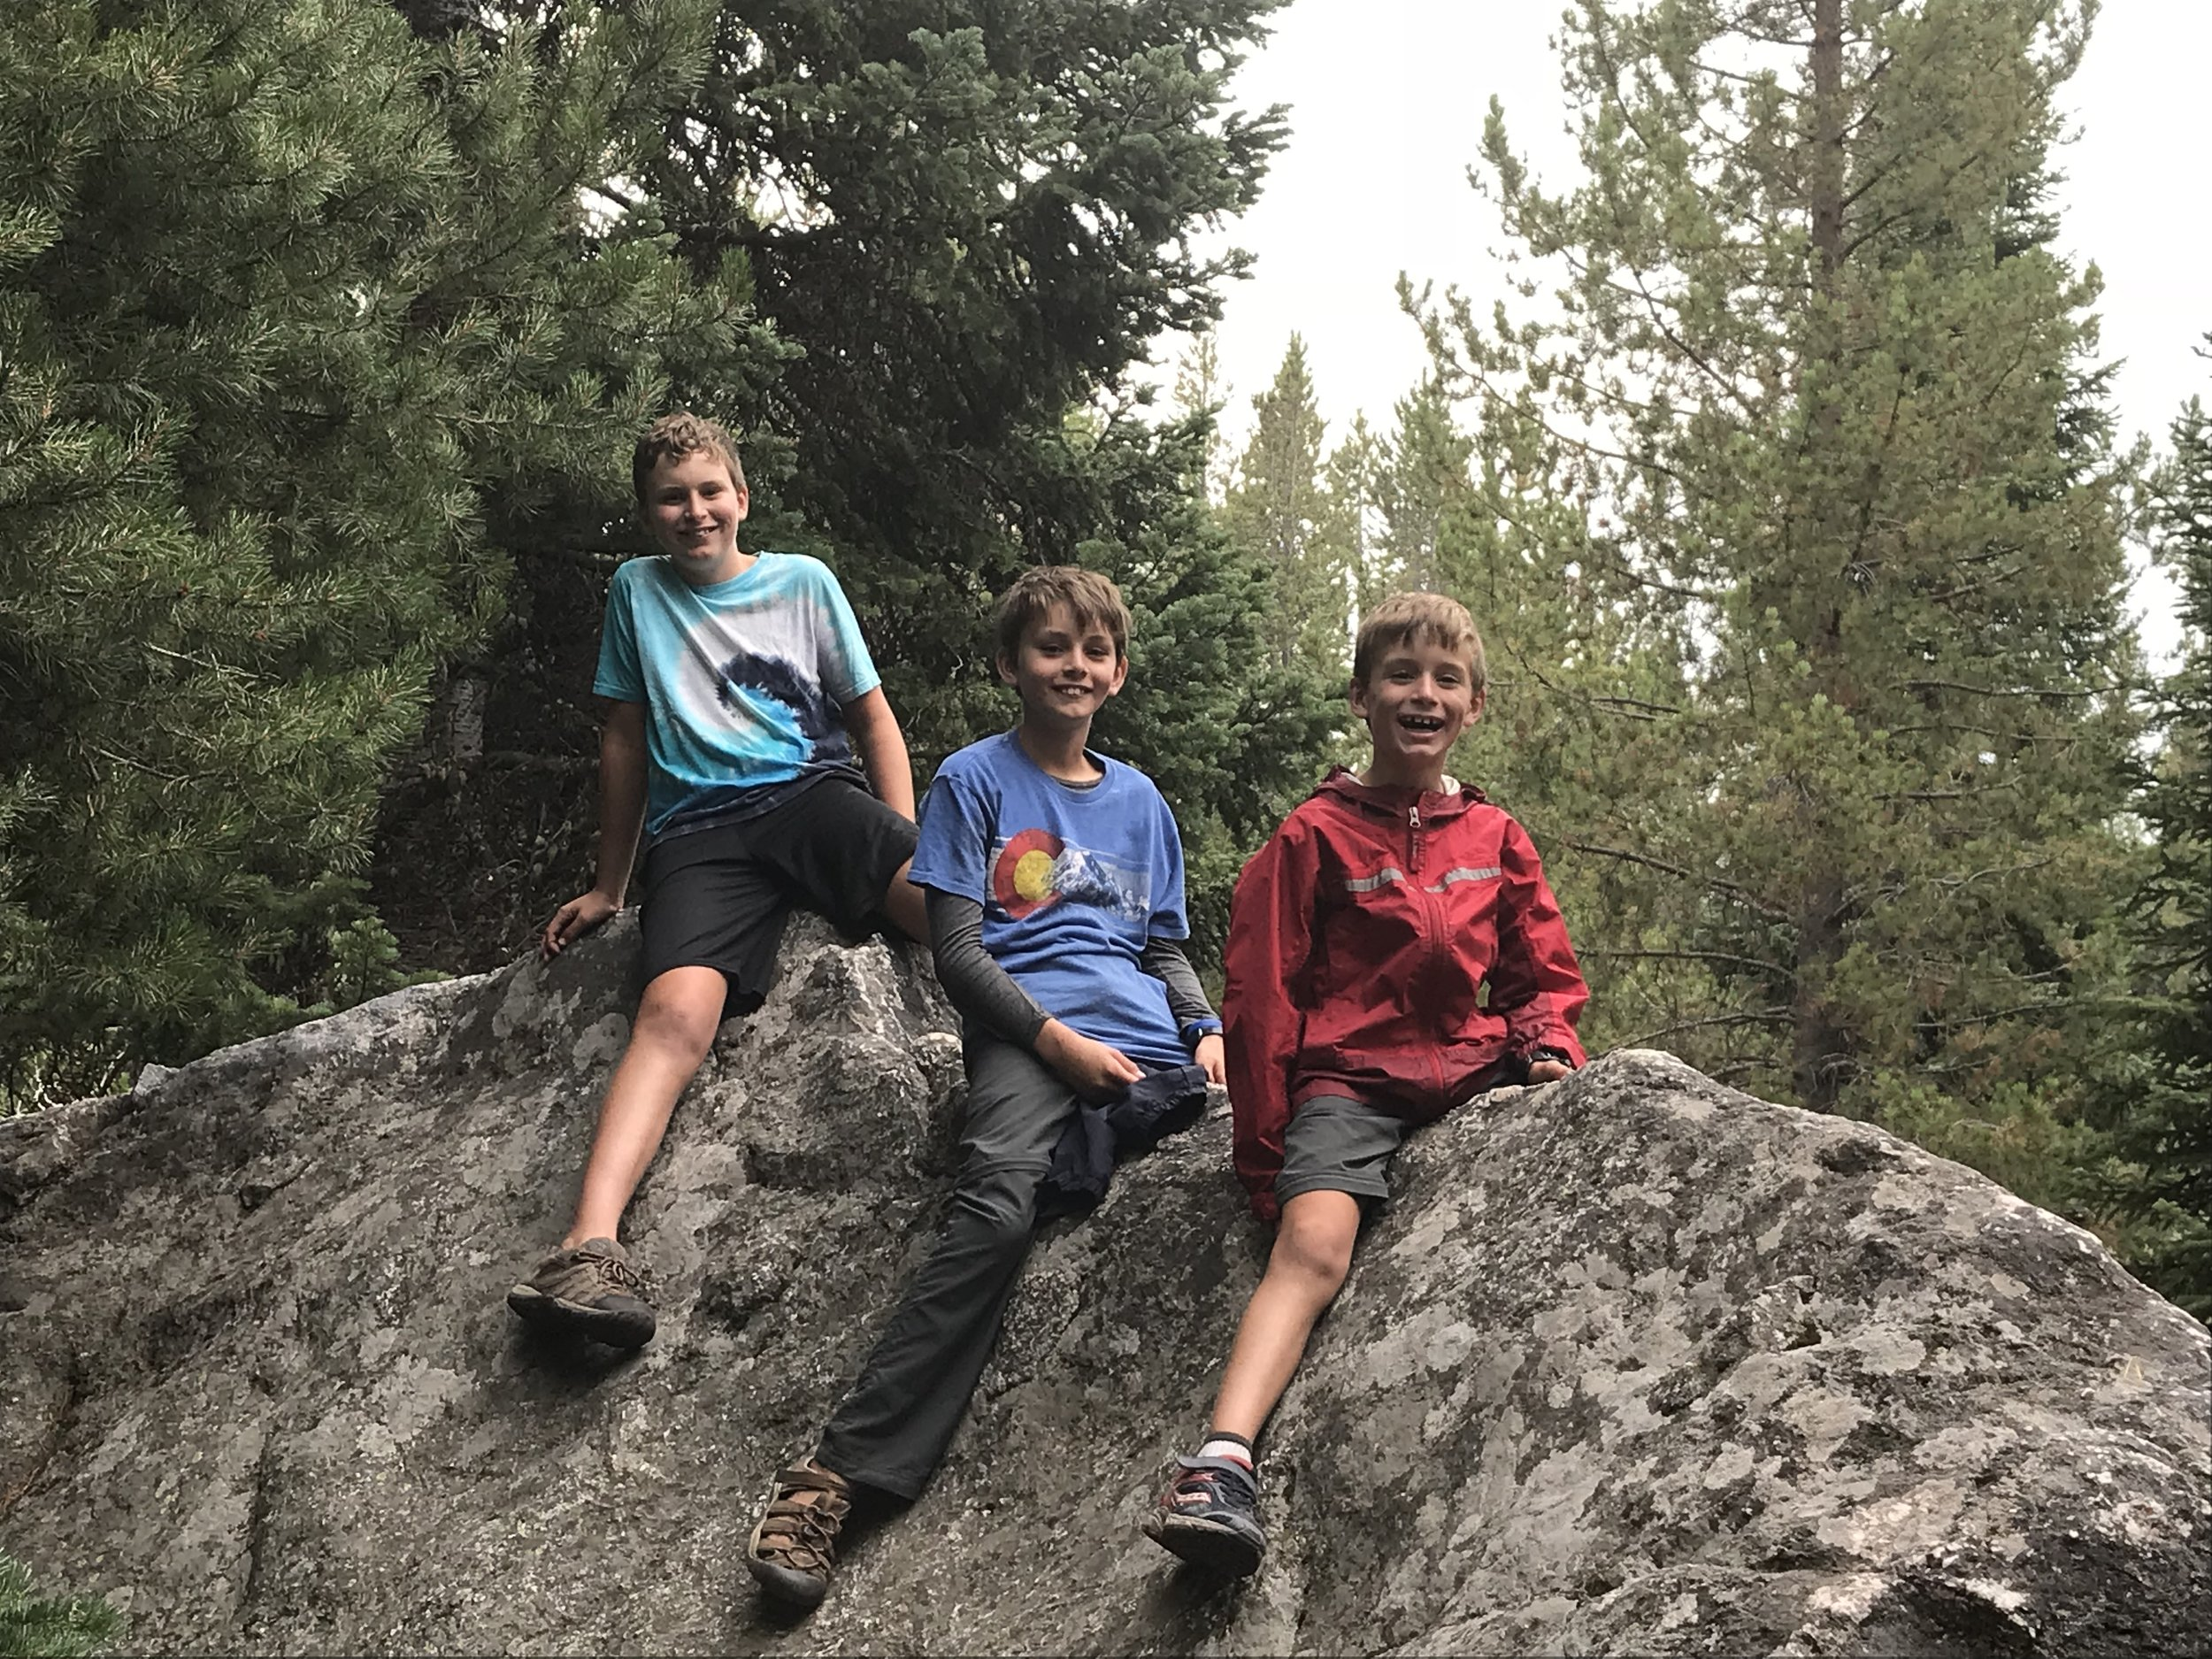 A fun rock the boys climbed on during a hike we took around Jenny Lake.